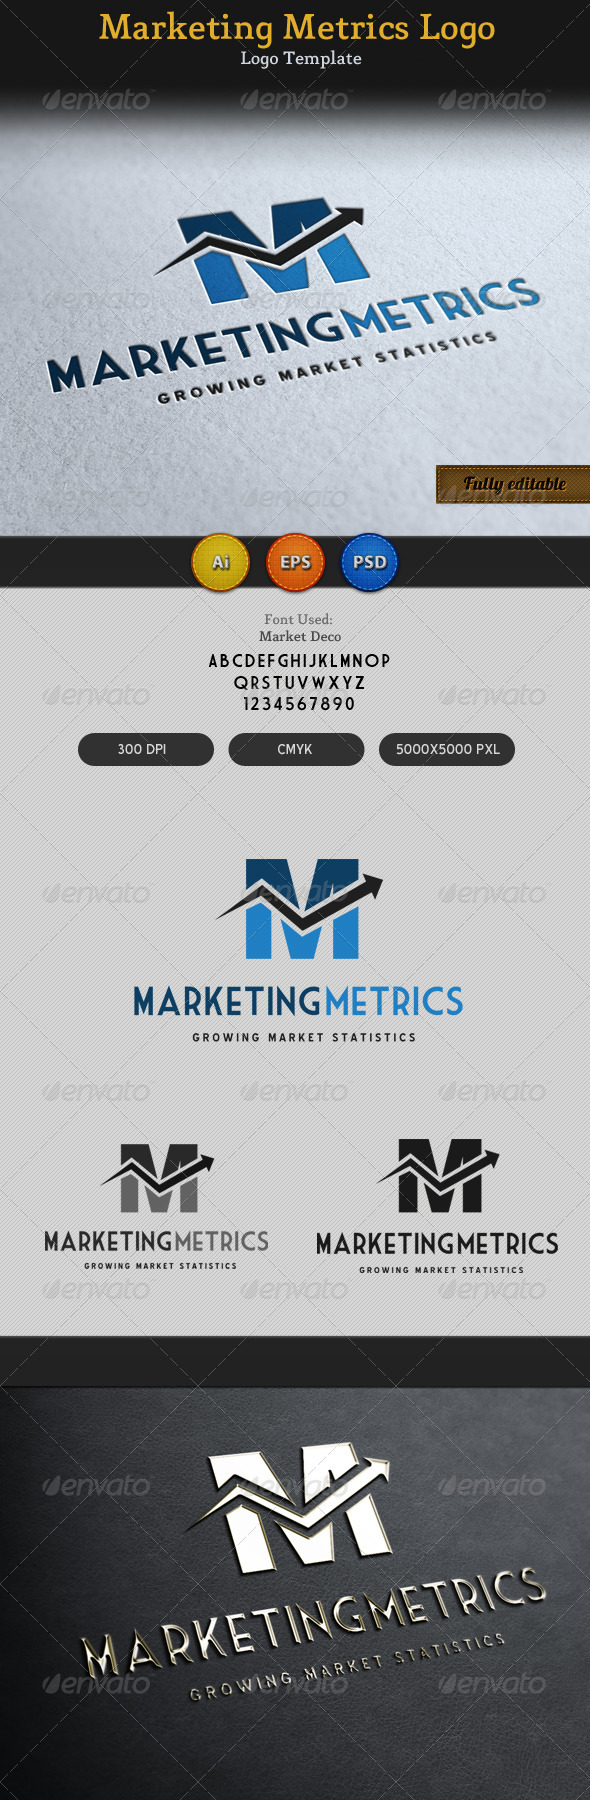 GraphicRiver Marketing Metrics Logo 2 3267236